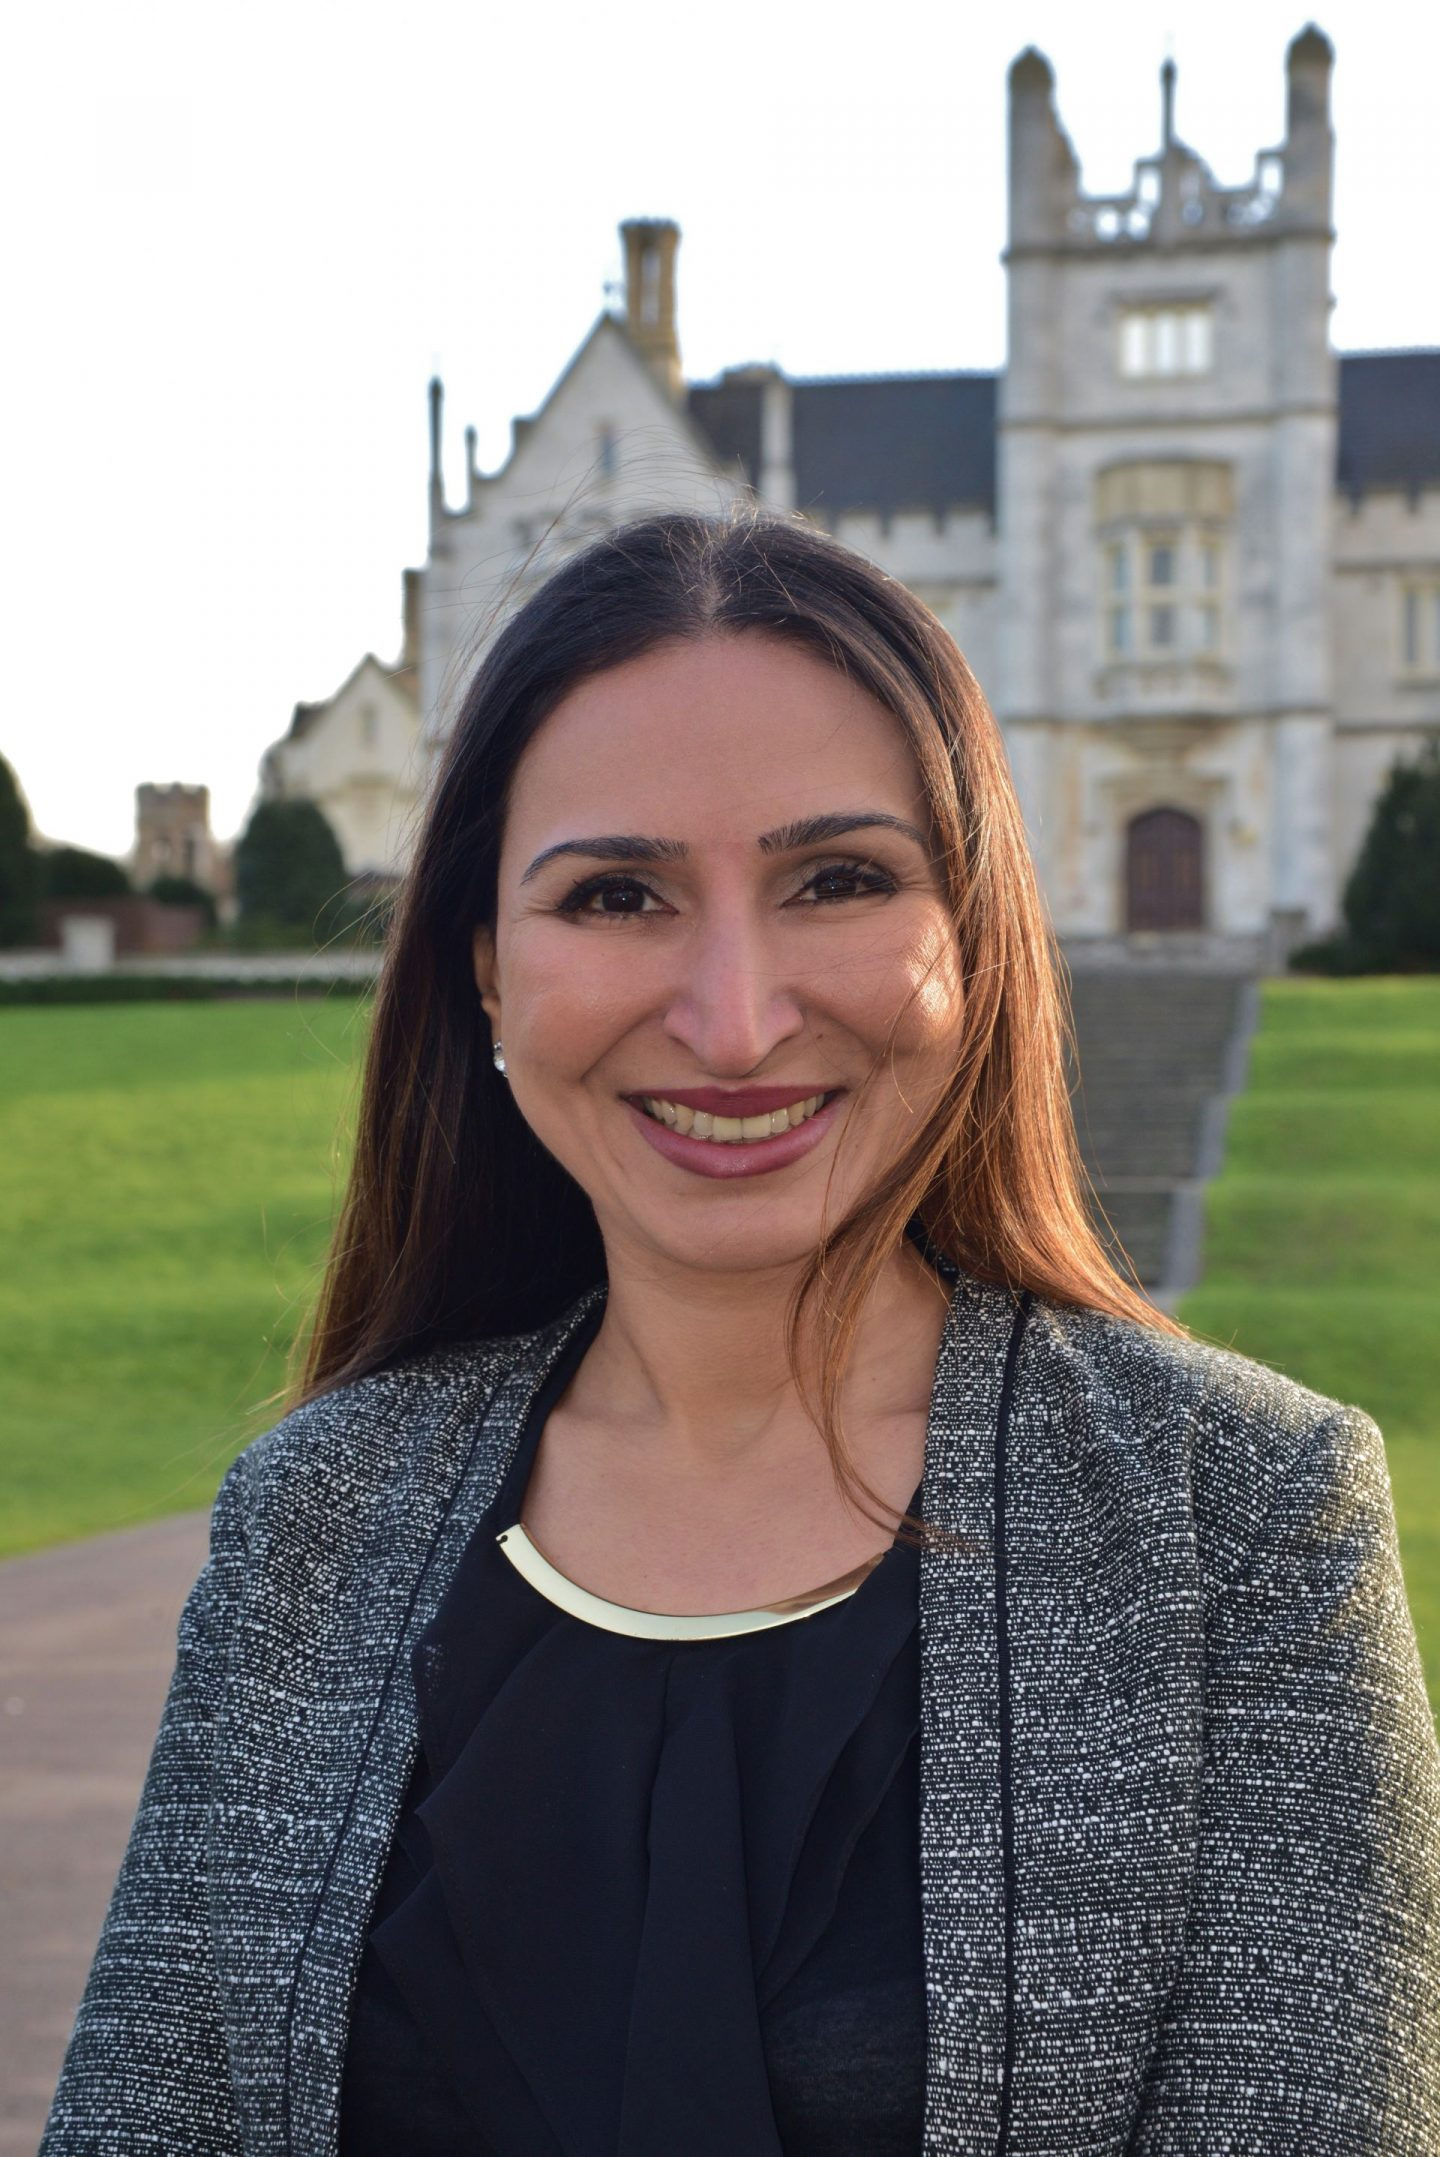 Dr Shirin Lakhani, Period products, dads guide to periods, Toxic Shock Syndrome, intimate health